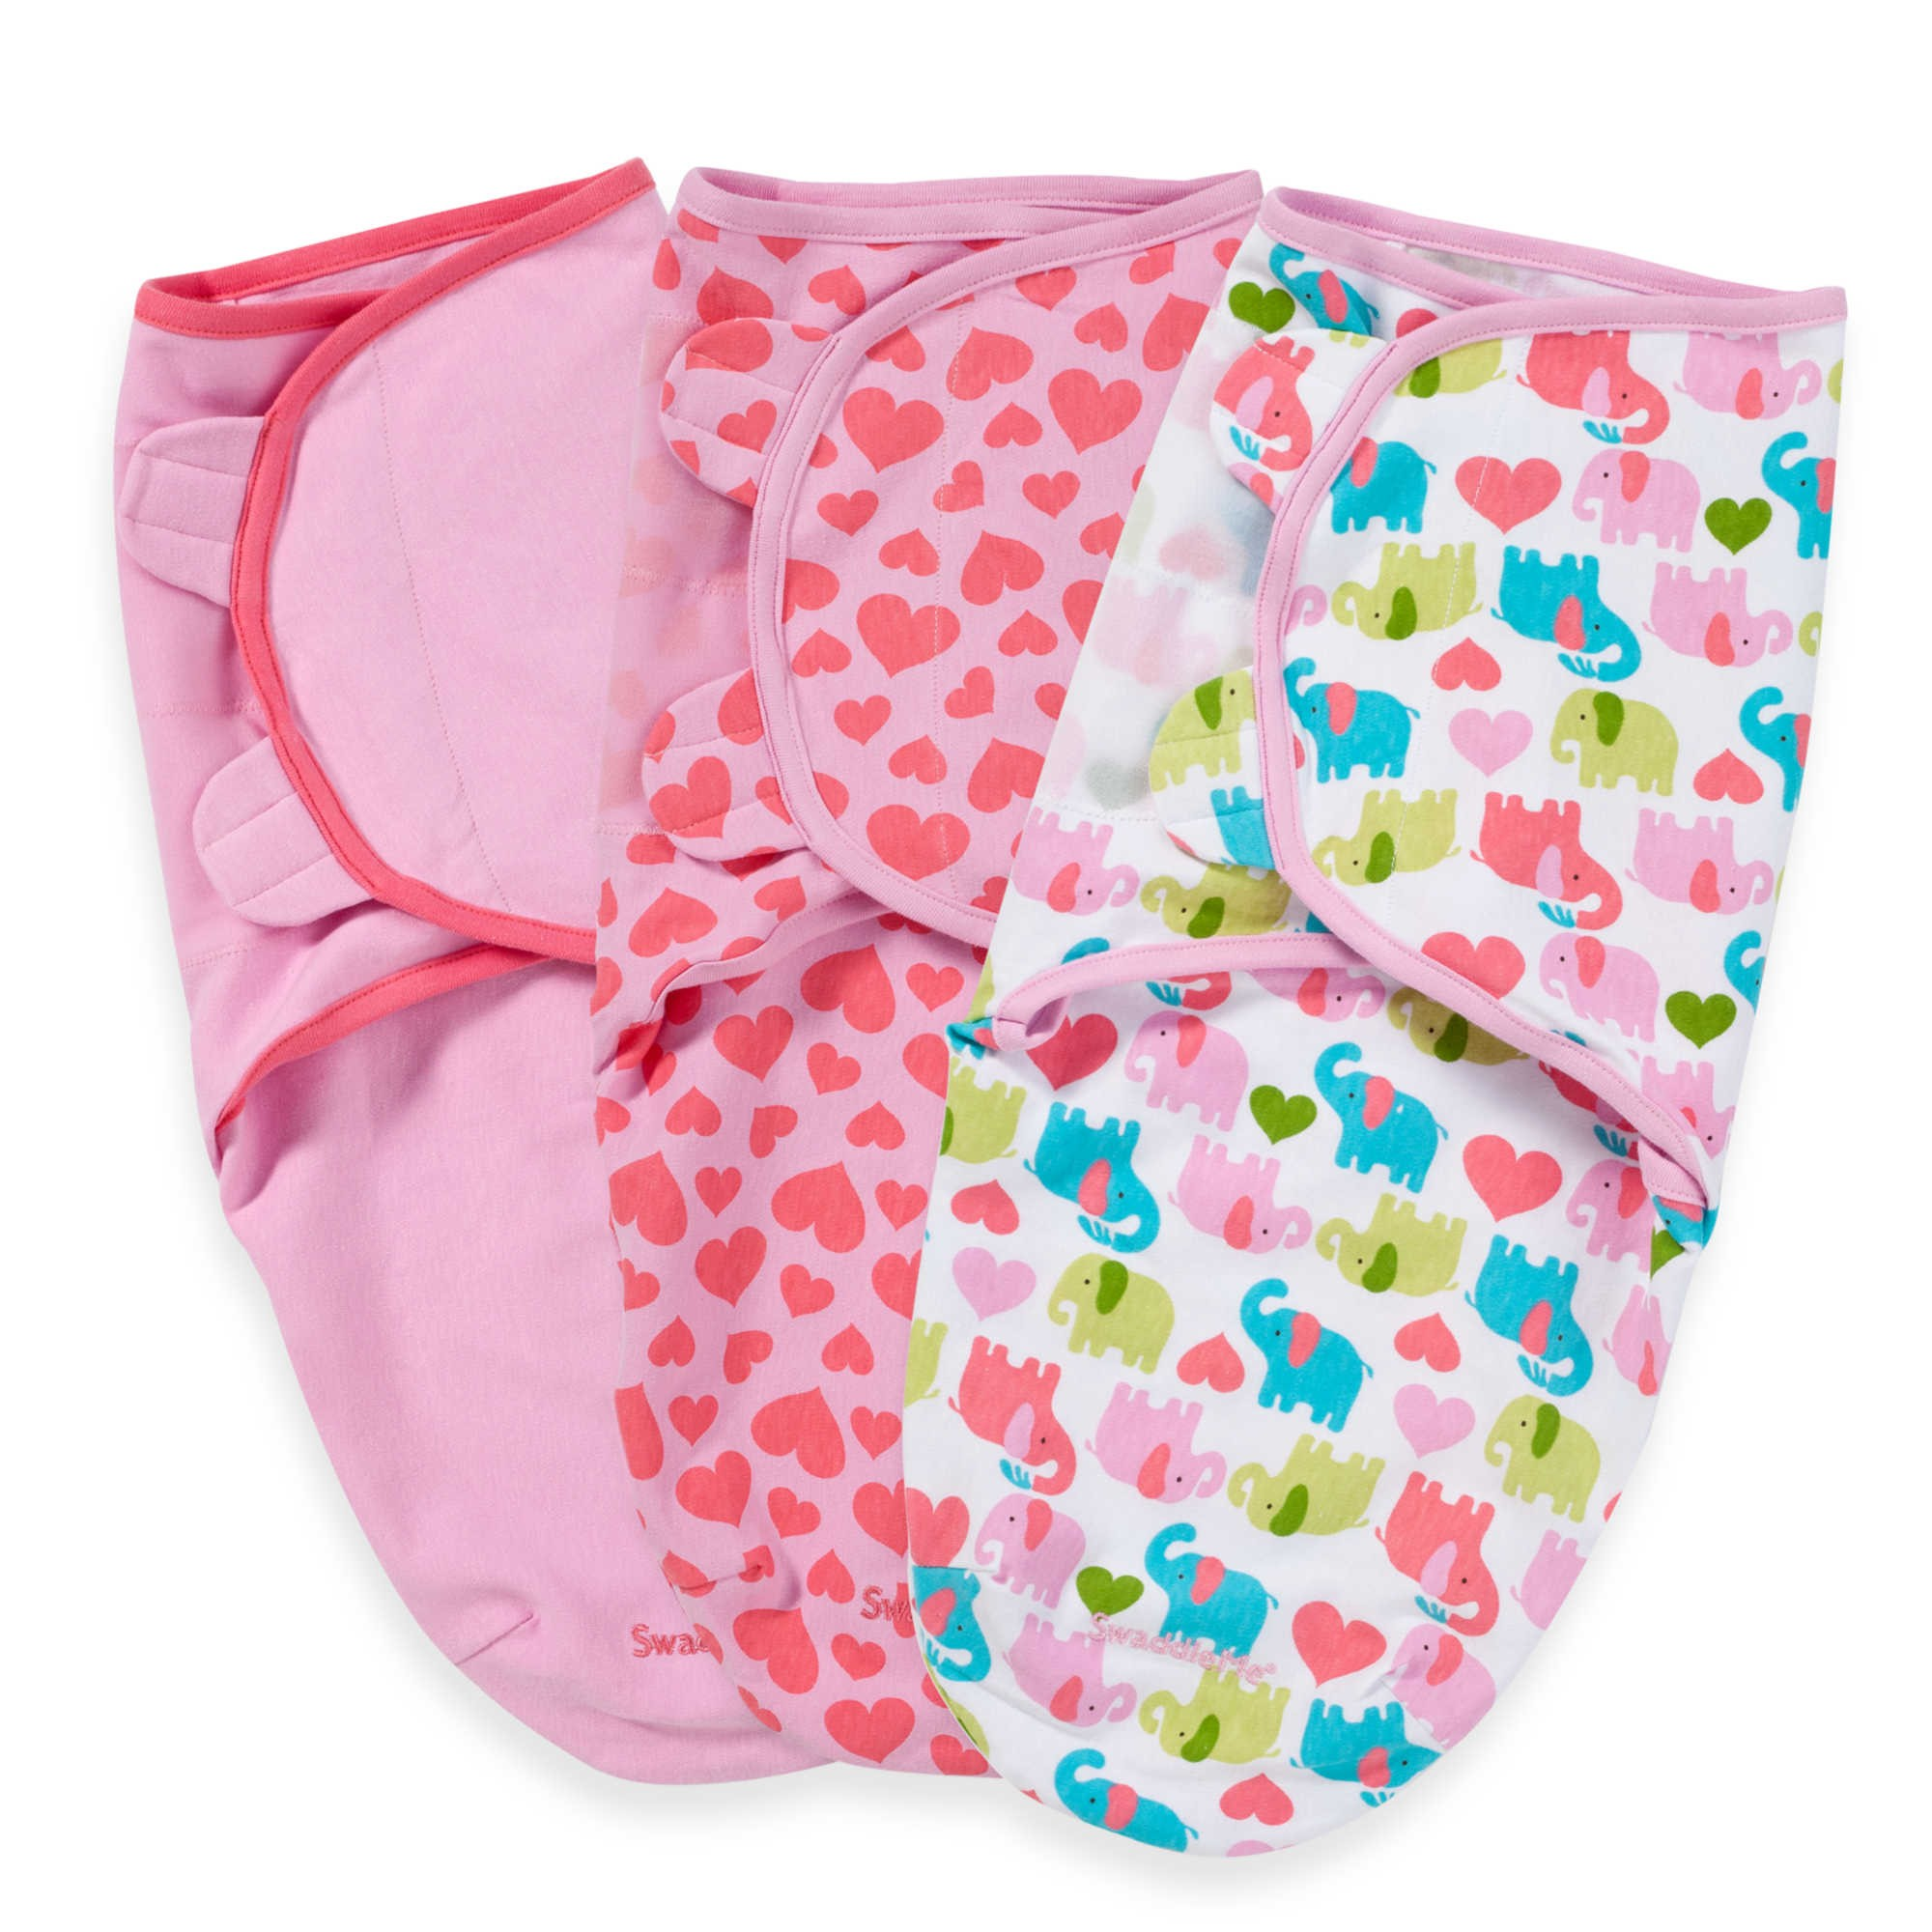 Damaged Packaging Summer Infant SwaddleMe Swaddle 3 Pack Size Small